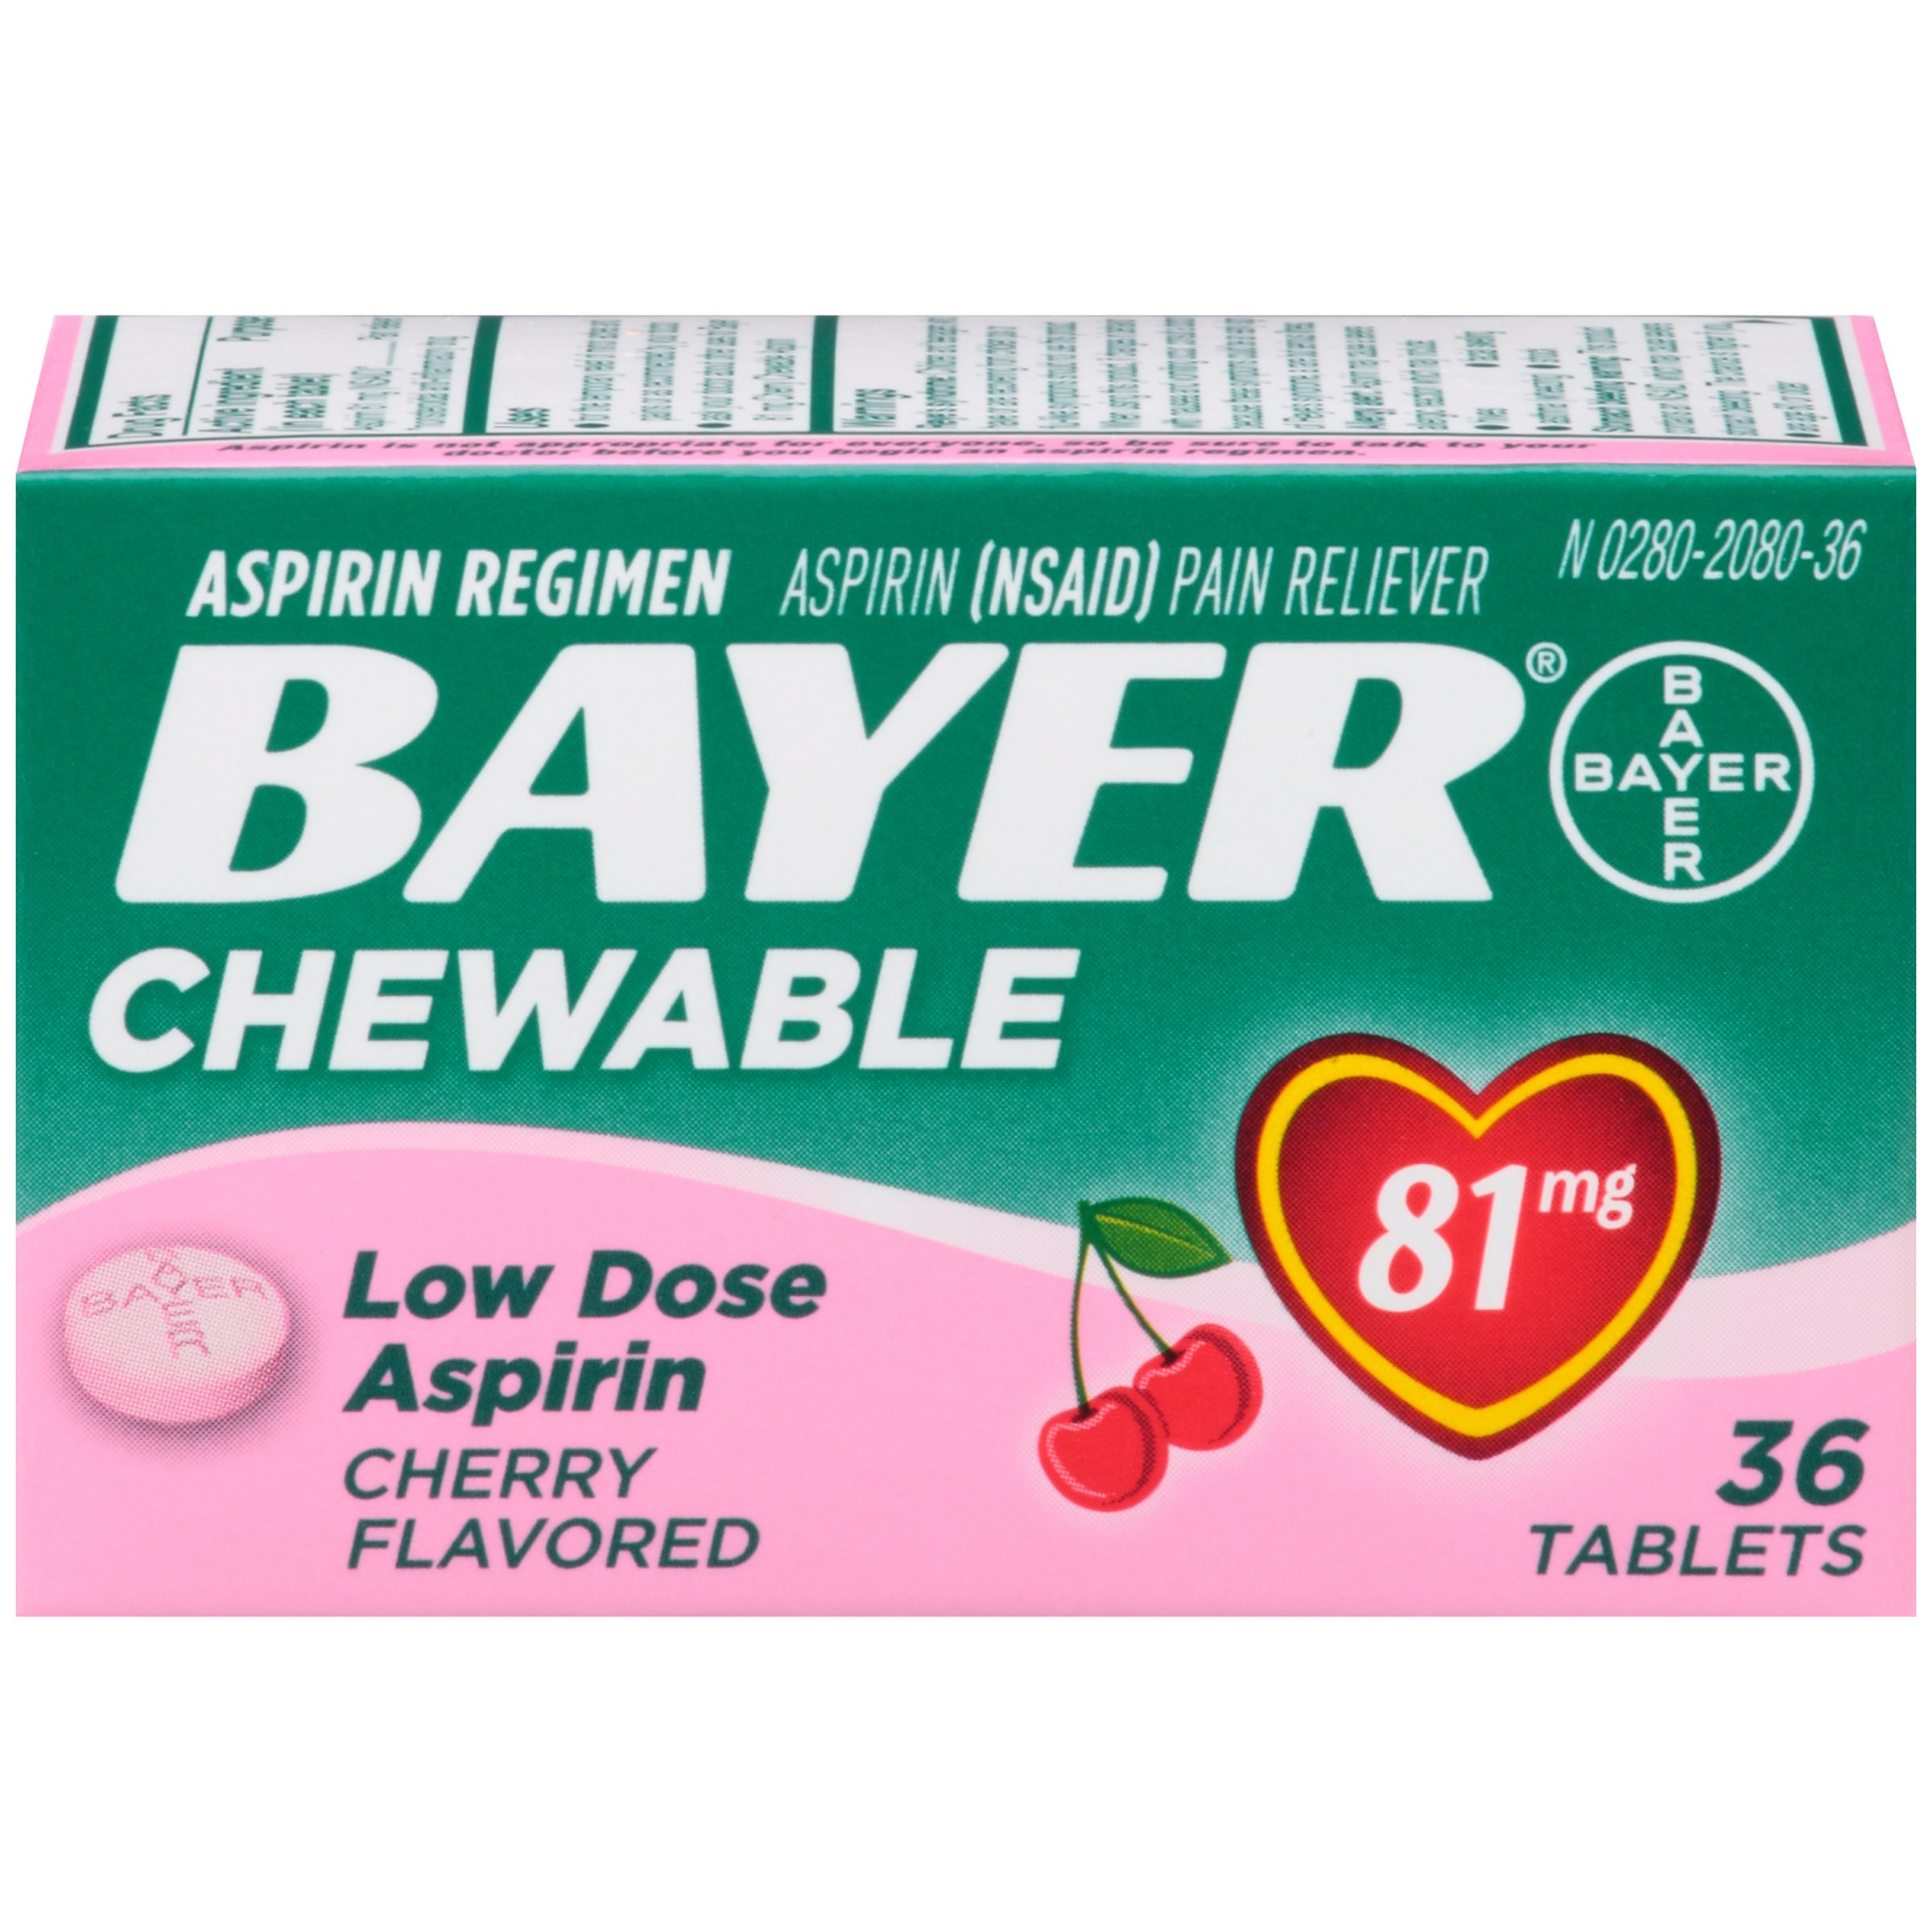 Aspirin Regimen Bayer 81mg Chewable Tablets, #1 Doctor Recommended Aspirin Brand, Pain Reliever, Cherry Flavor, 36 Count